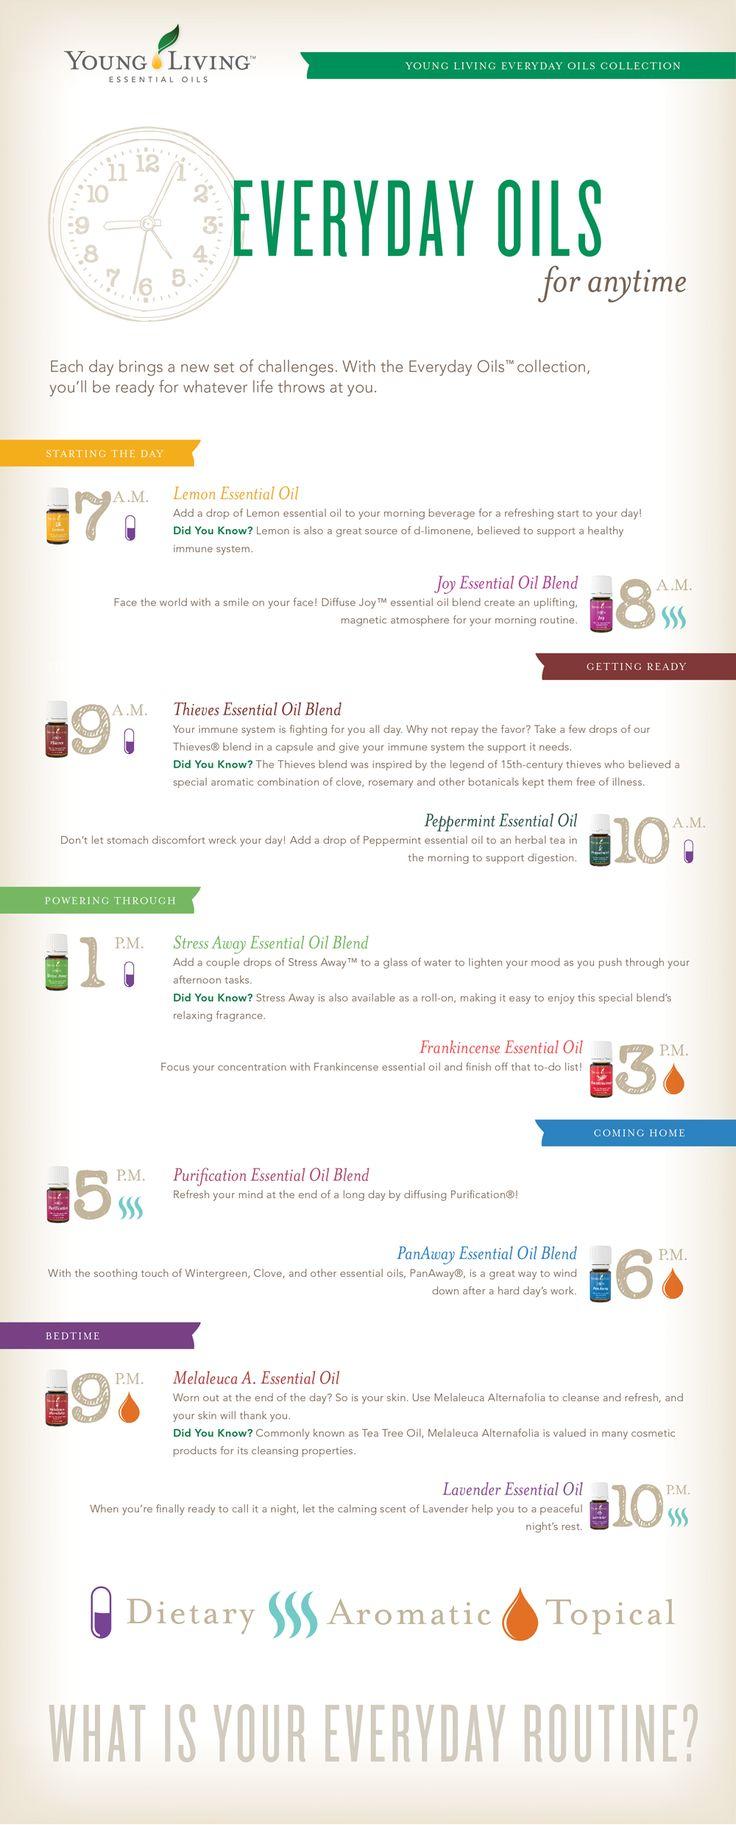 Young Living Essential Oils - to use Everyday! For more information and to order Young Living, visit:  www.jadoreoils.com